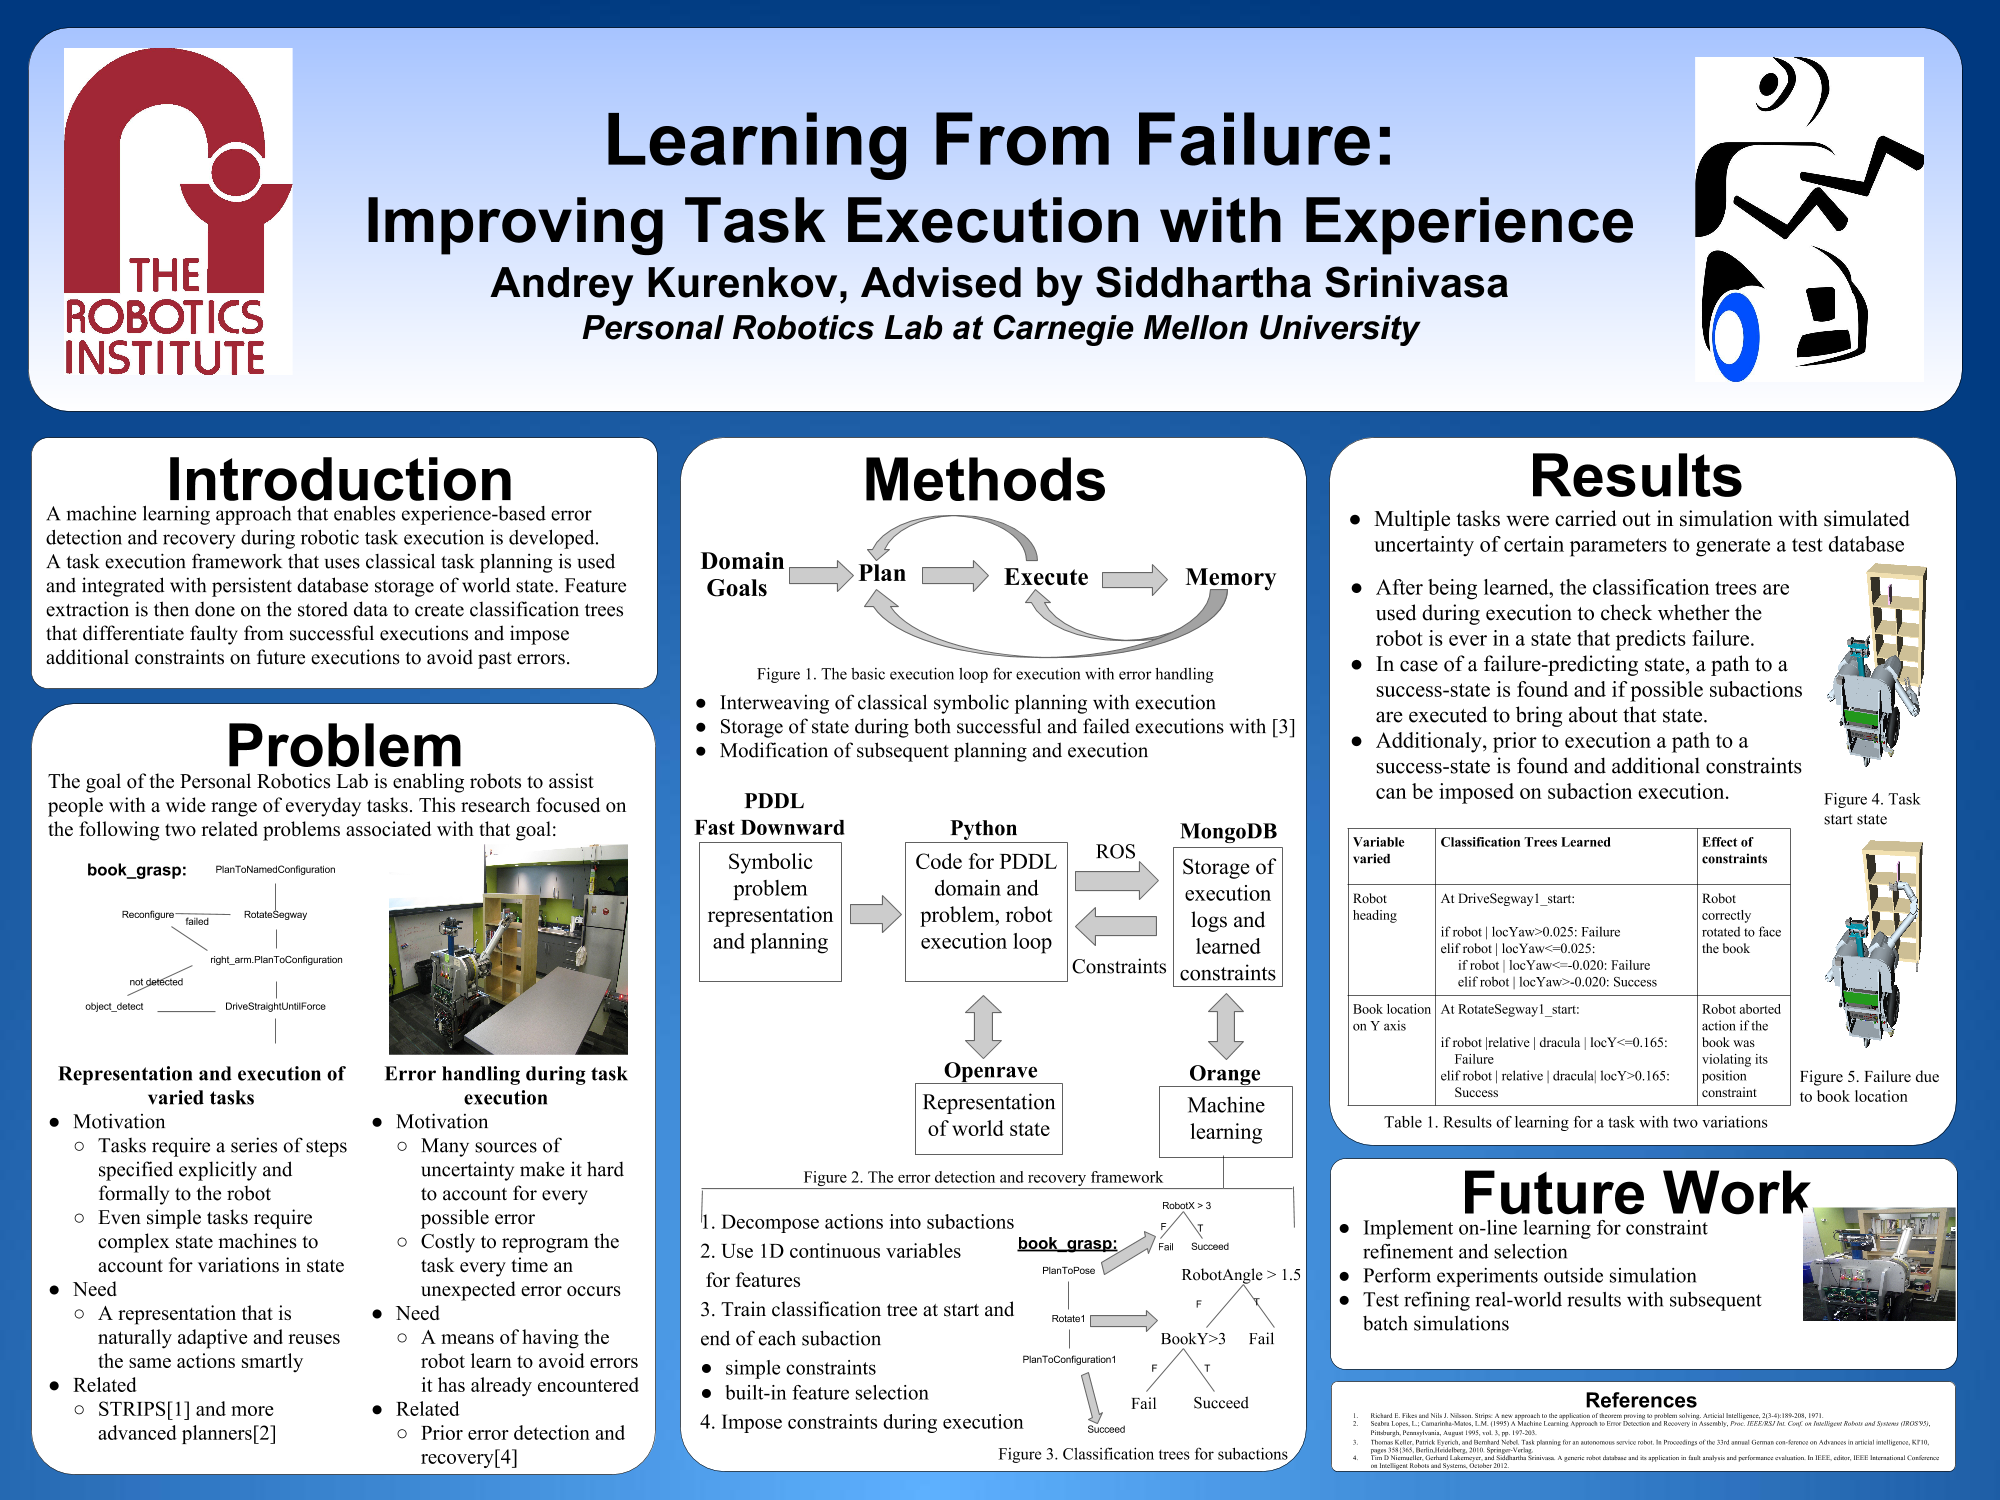 learning from failure Lff extracts value from failure in the form of learning for the organisation lff gives employees the chance to compensate their failures by developing a lessons learned that will help the company avoid more failures of the same kind happen in the future mistakes and failure are an inevitable part.